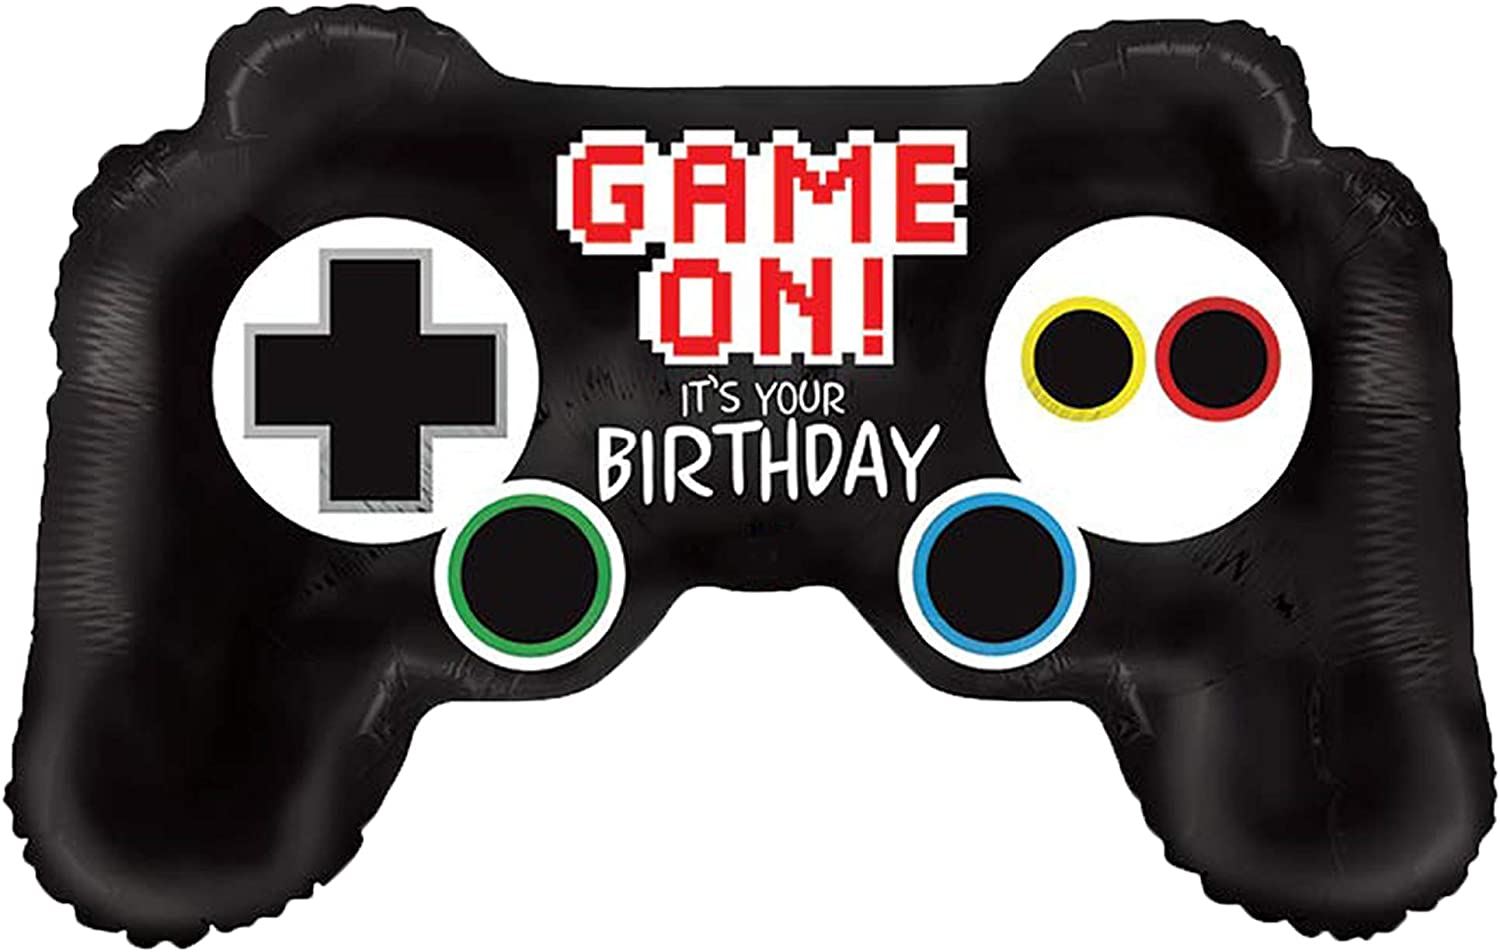 Game On! It's Your Birthday Video Game Controller 36